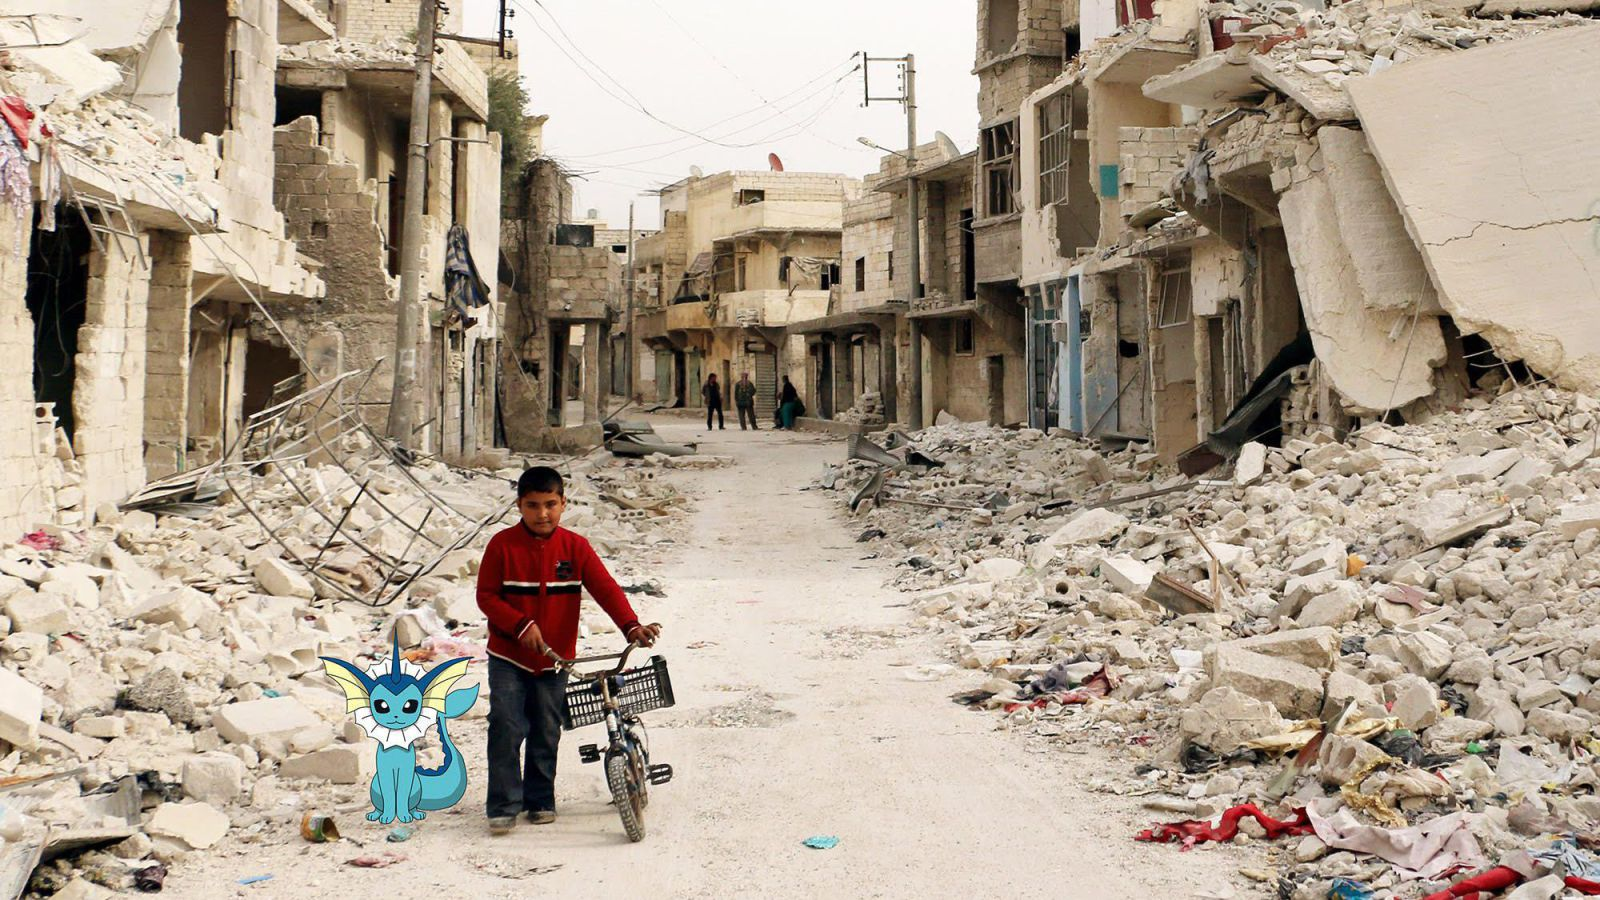 Activists invoke the Pokemon Go craze to draw attention to the plight of children in Syria.